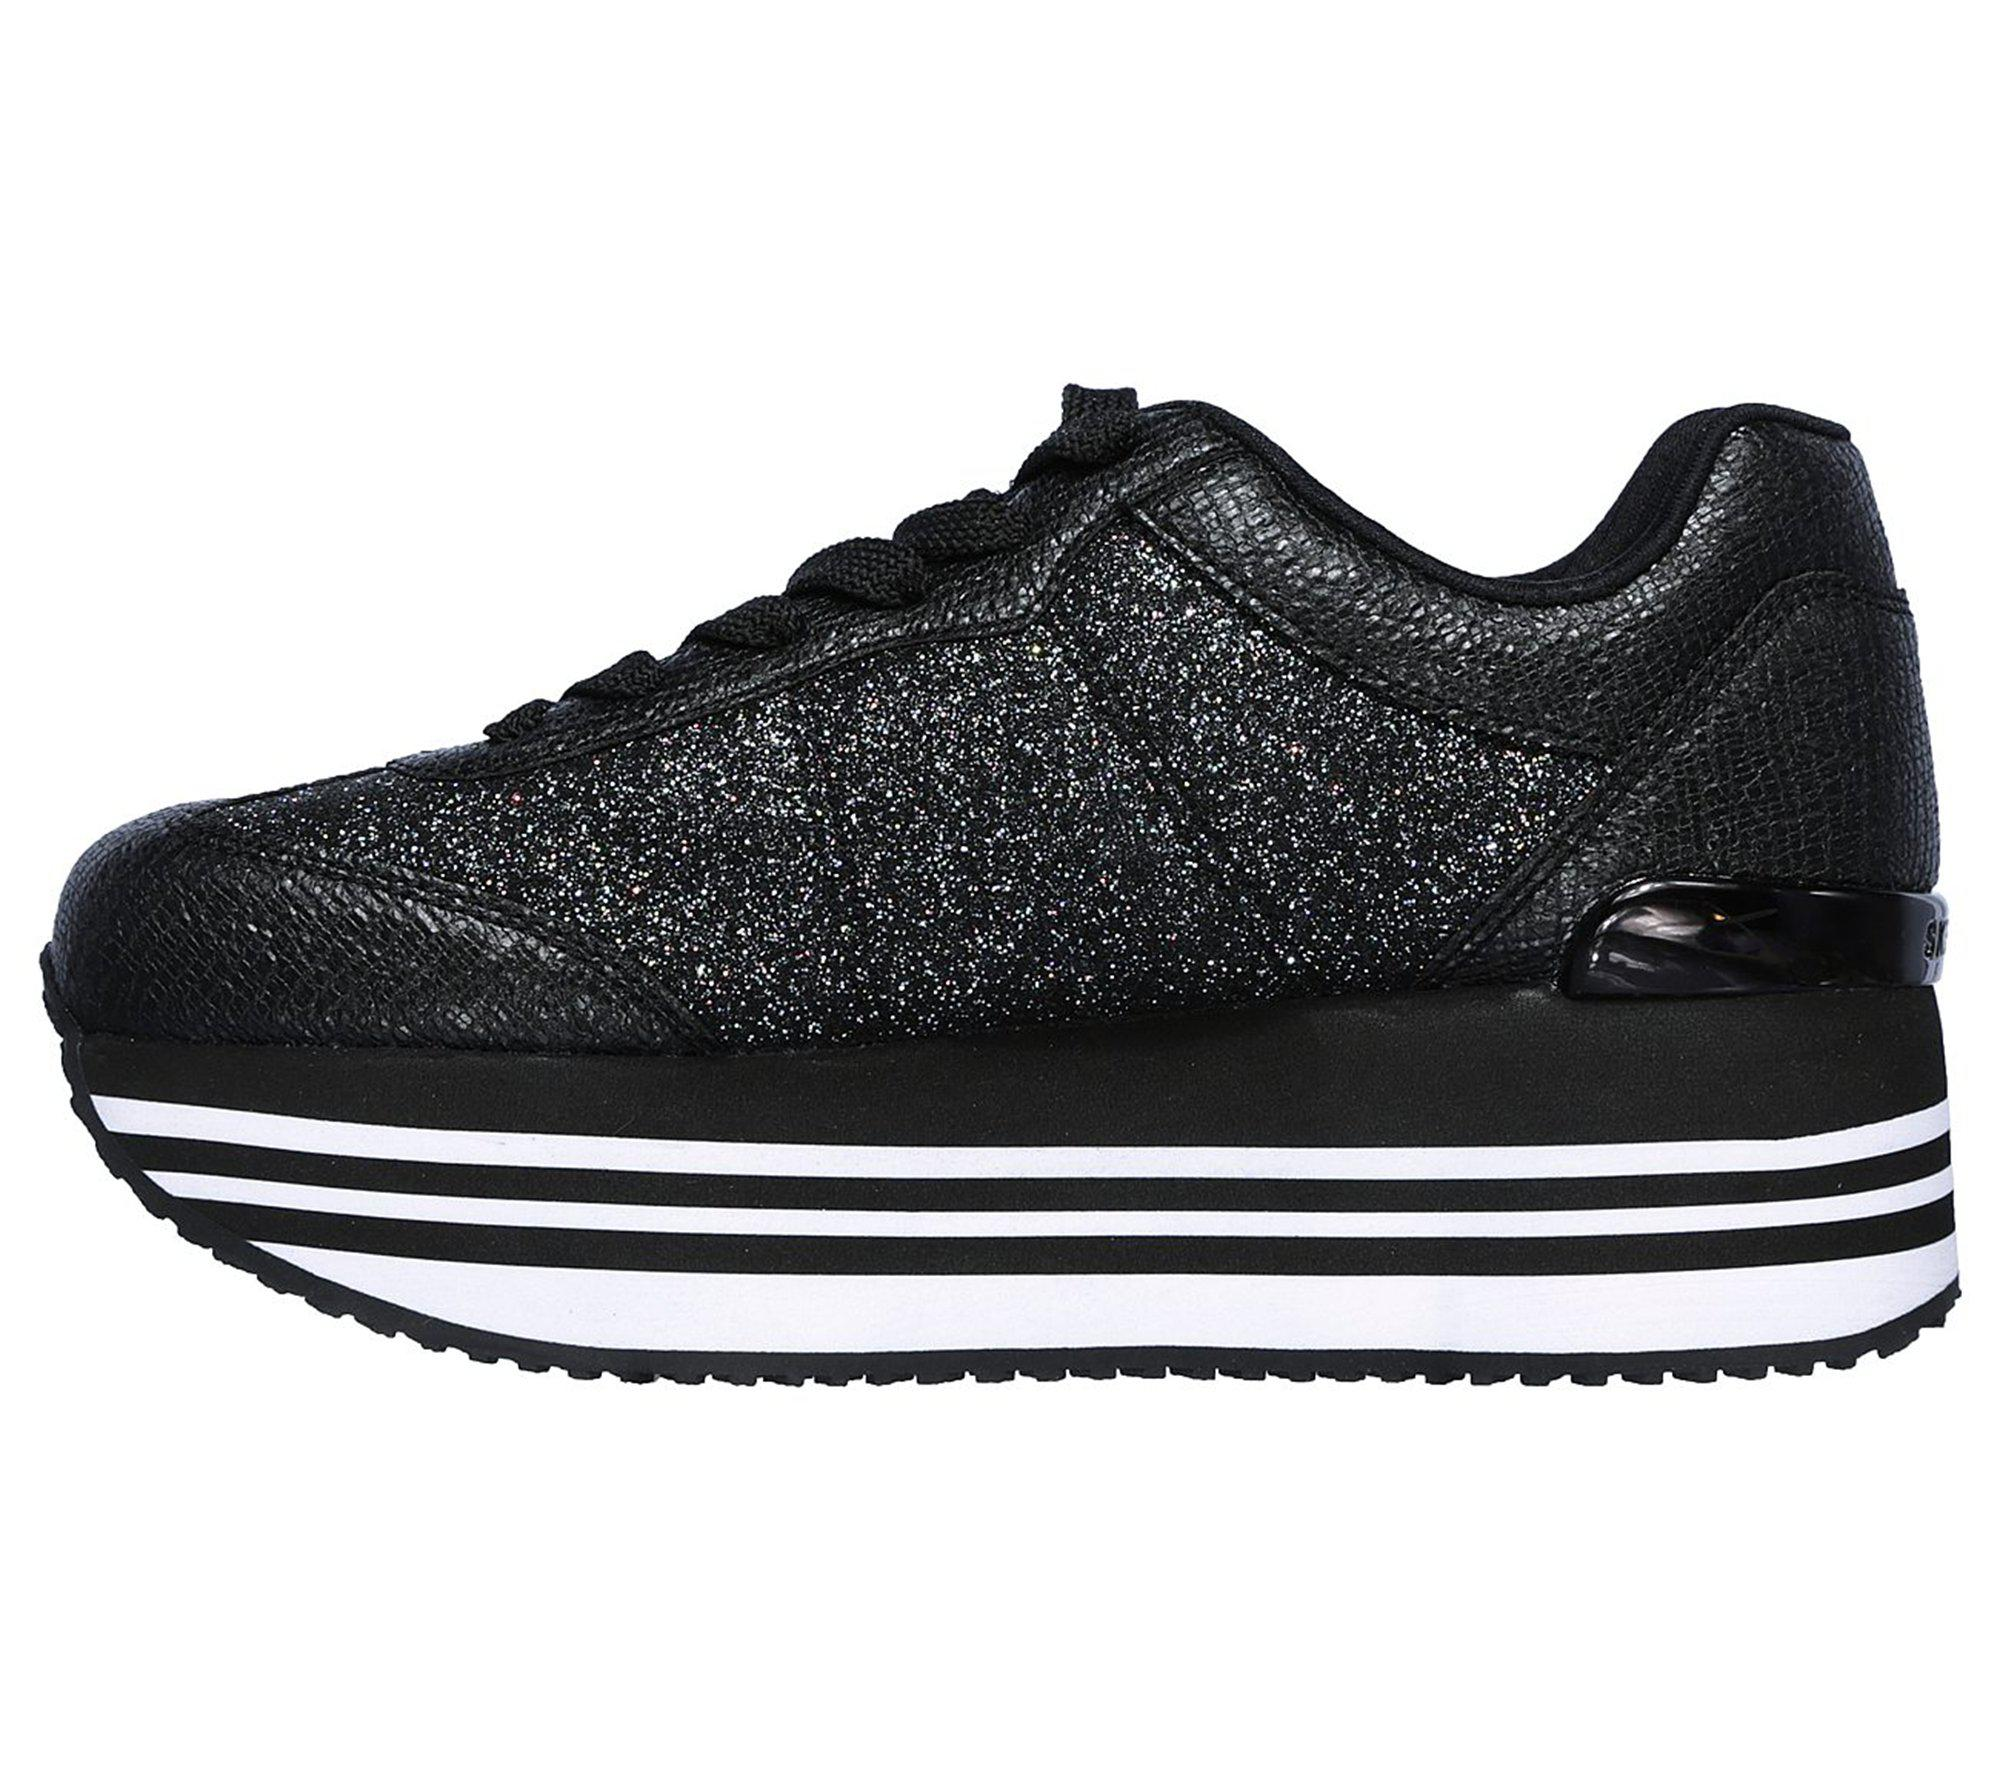 Skechers Leather Highrise - High